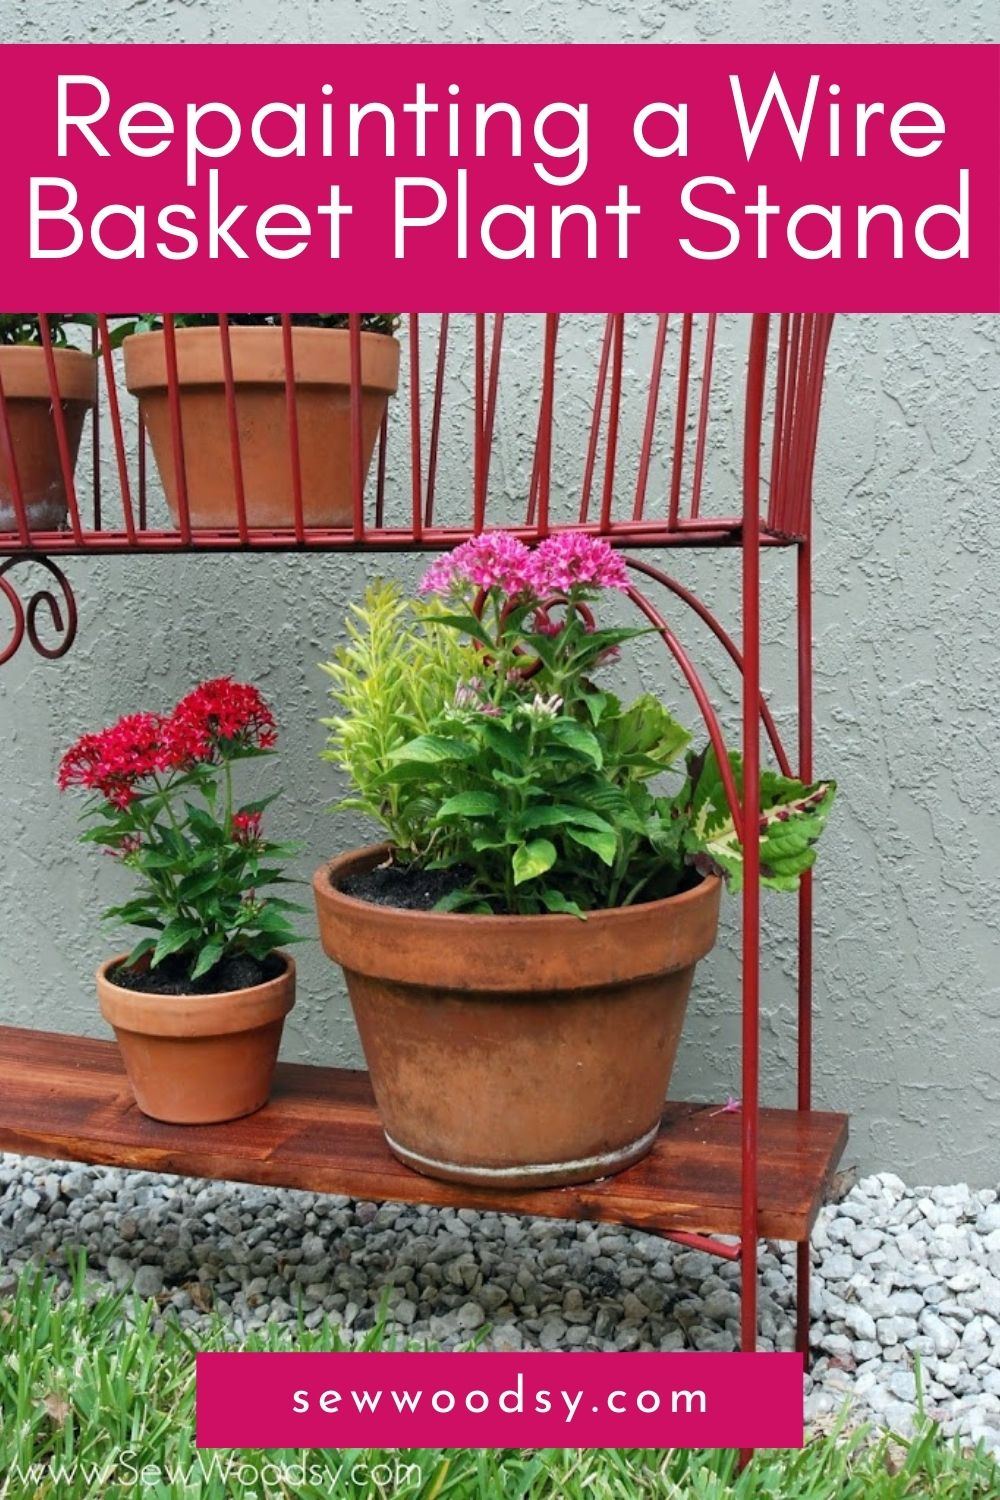 Close up of a red wire basket with a wood bottom shelf with plants on it and text on image for Pitnerest.